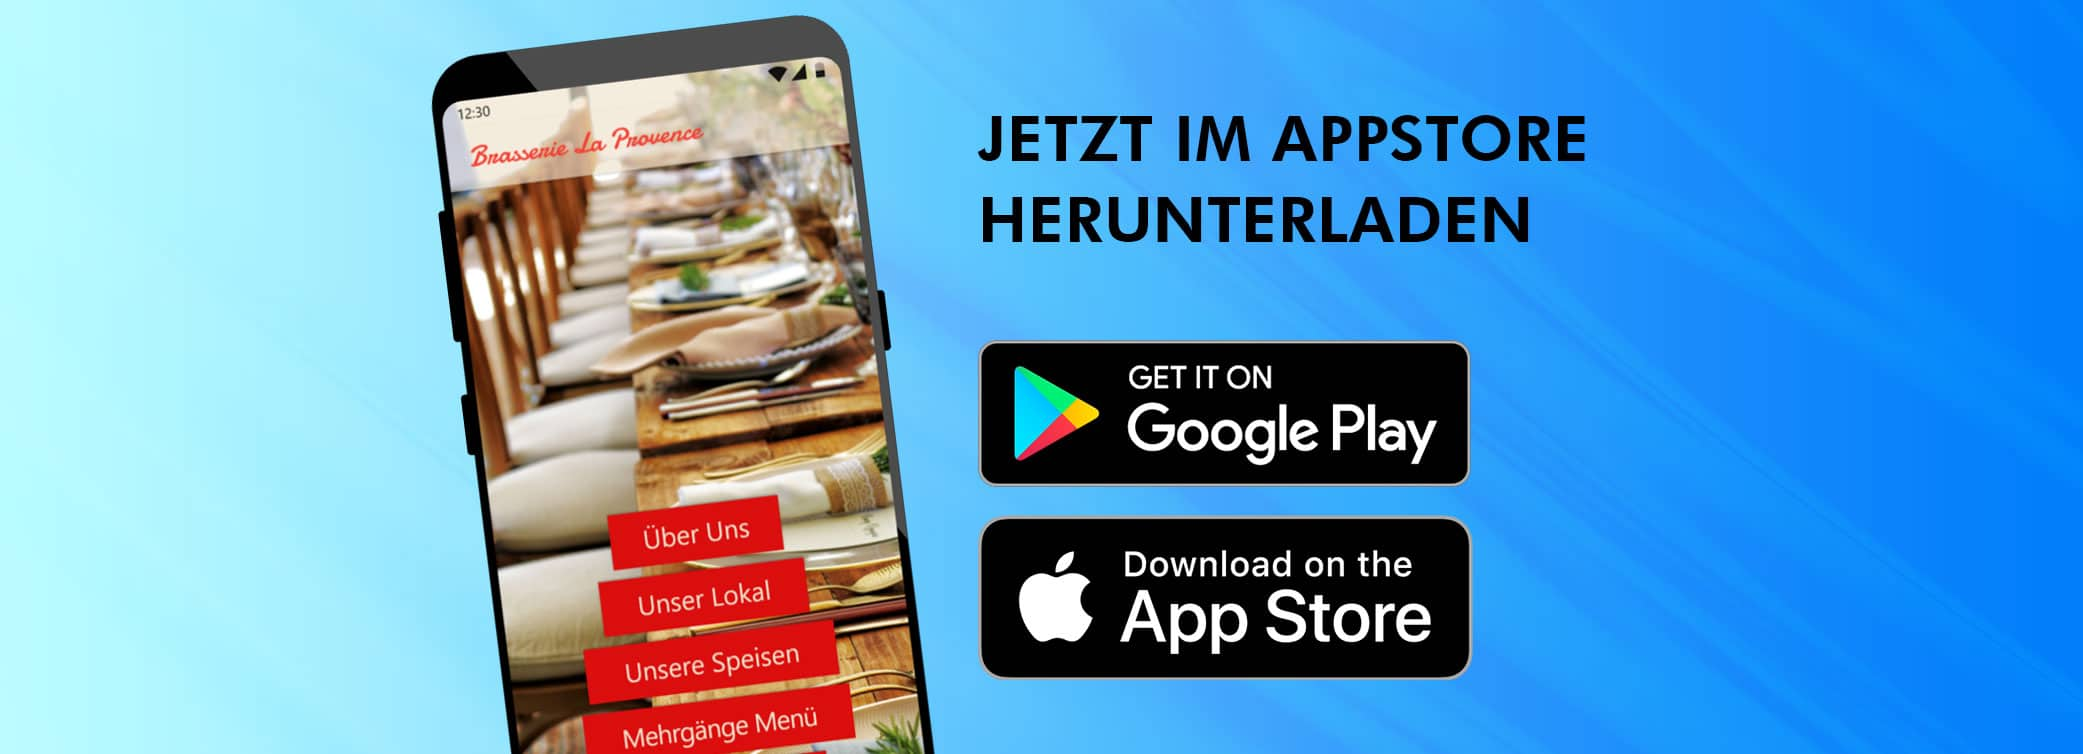 ON AIR Appbuilder - App vermarkten